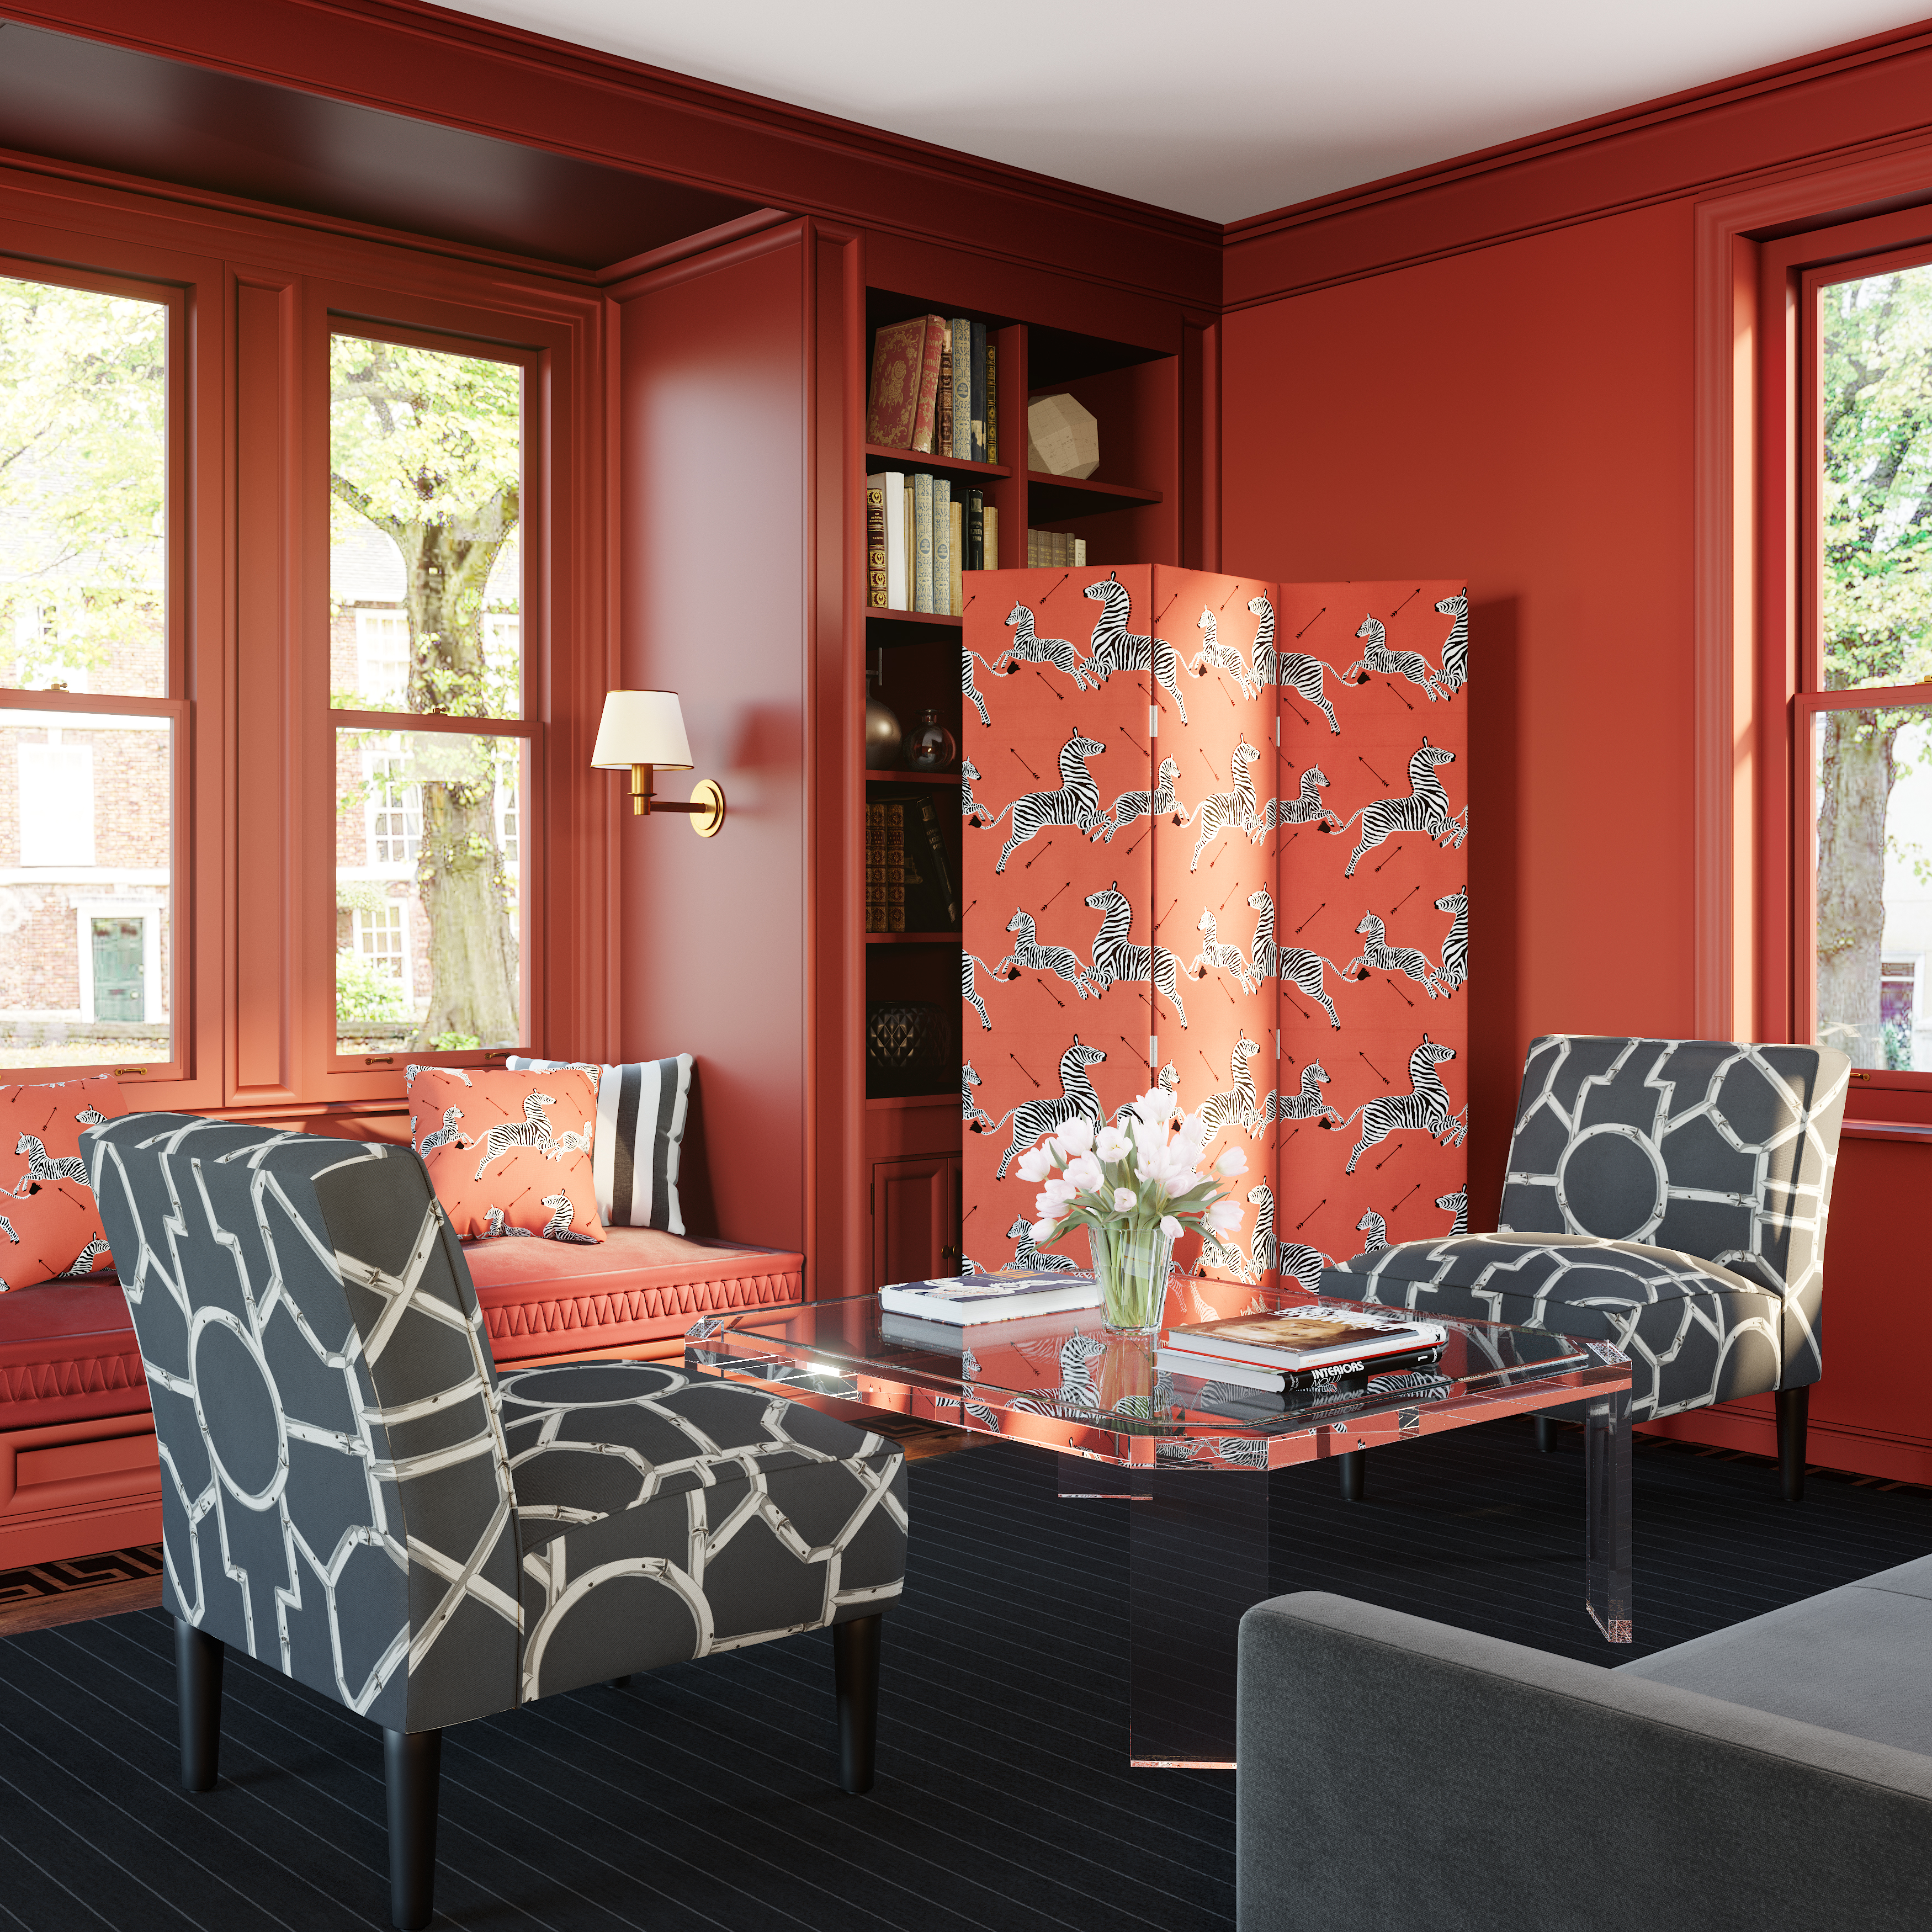 Decorative Room Dividers Make An Elegant Comeback The Washington Post